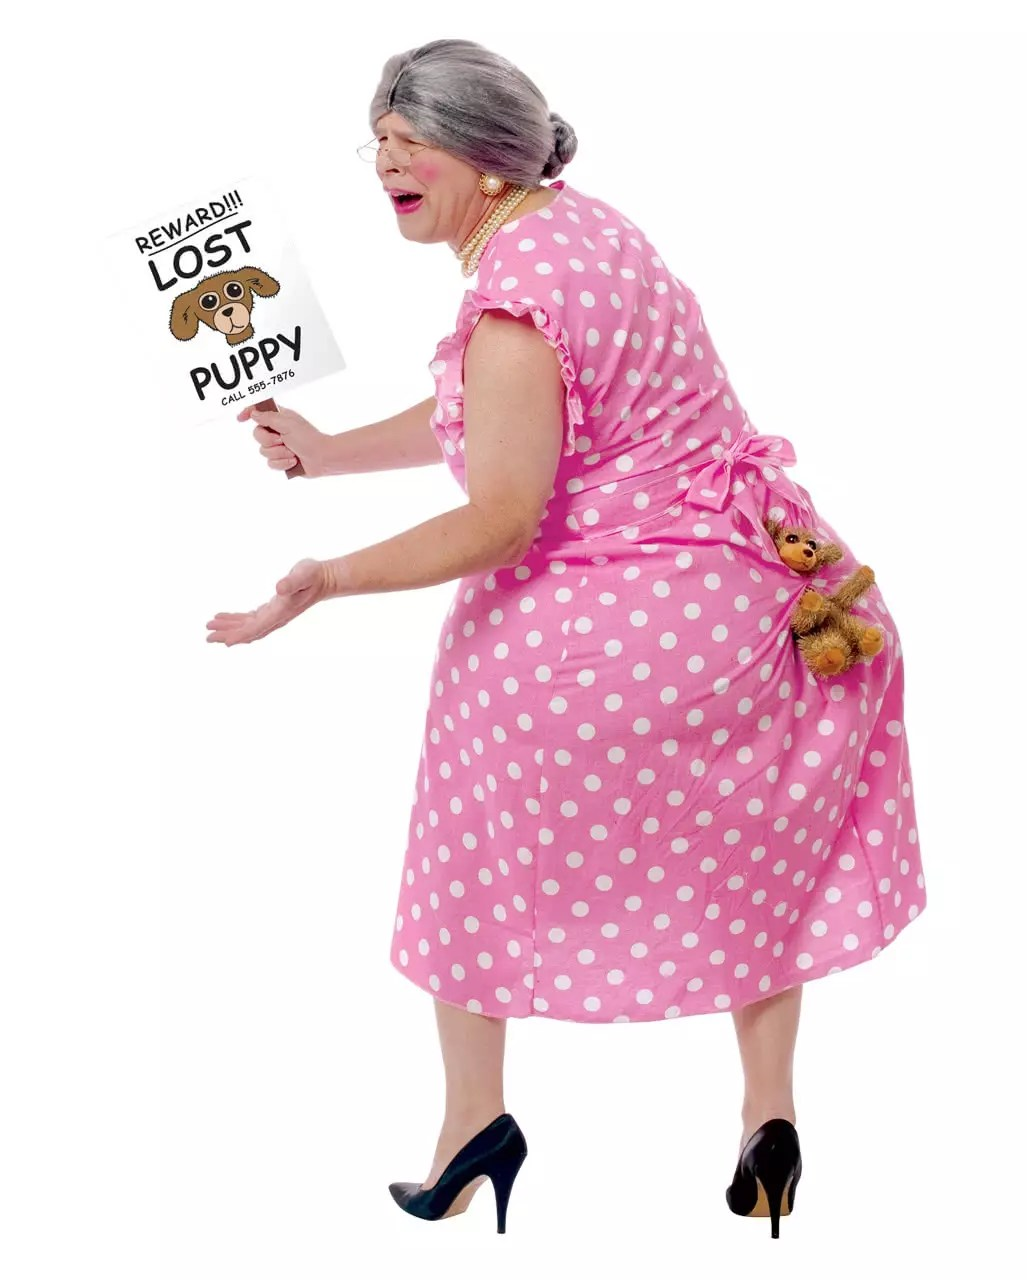 Dog Grandma Costume Lost Puppy Funny costumes Party